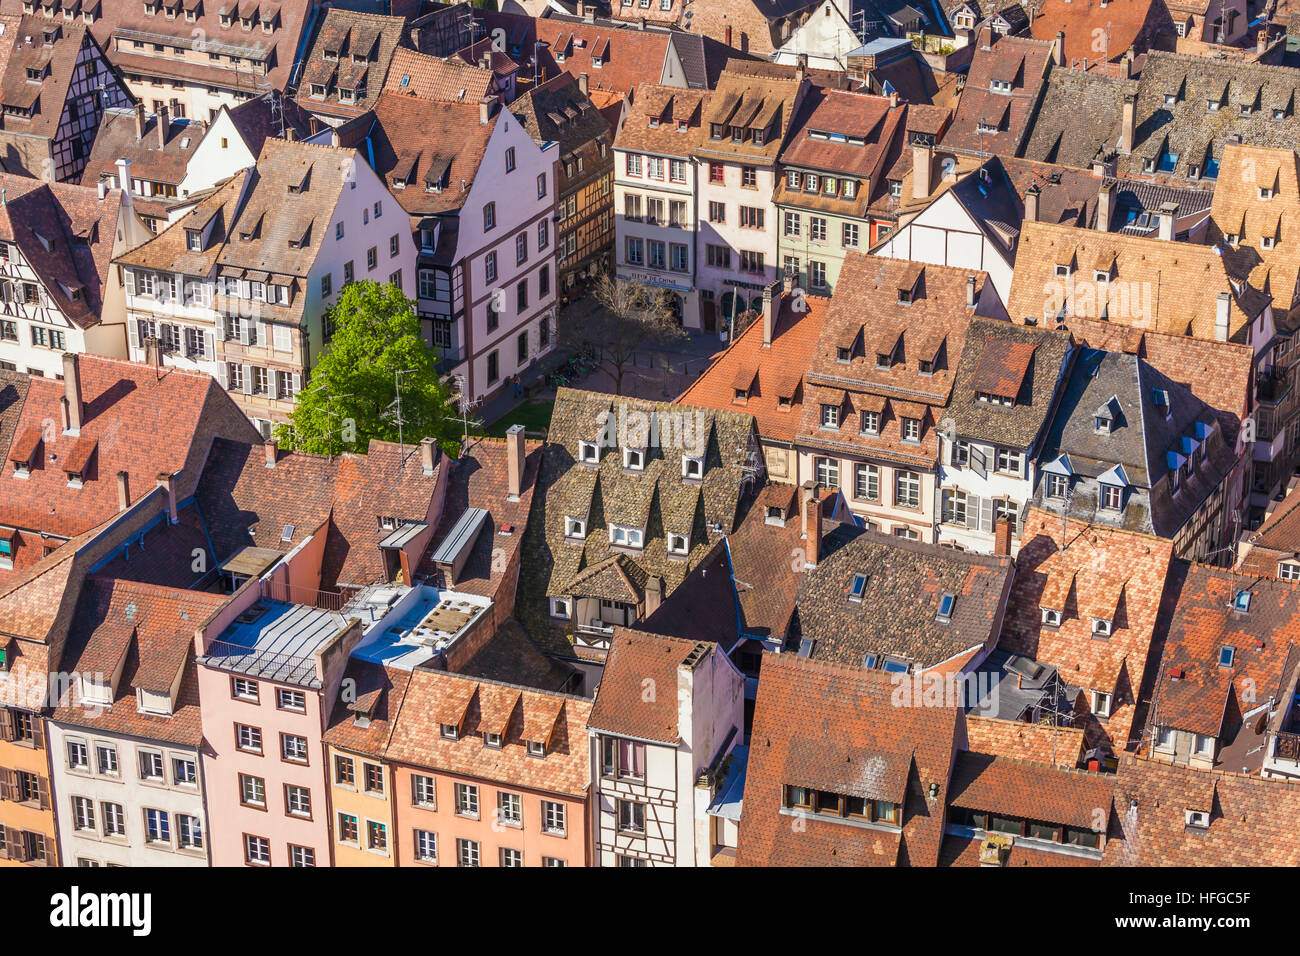 View over the rooftops of the historic center, Strasbourg, Alsace, France - Stock Image